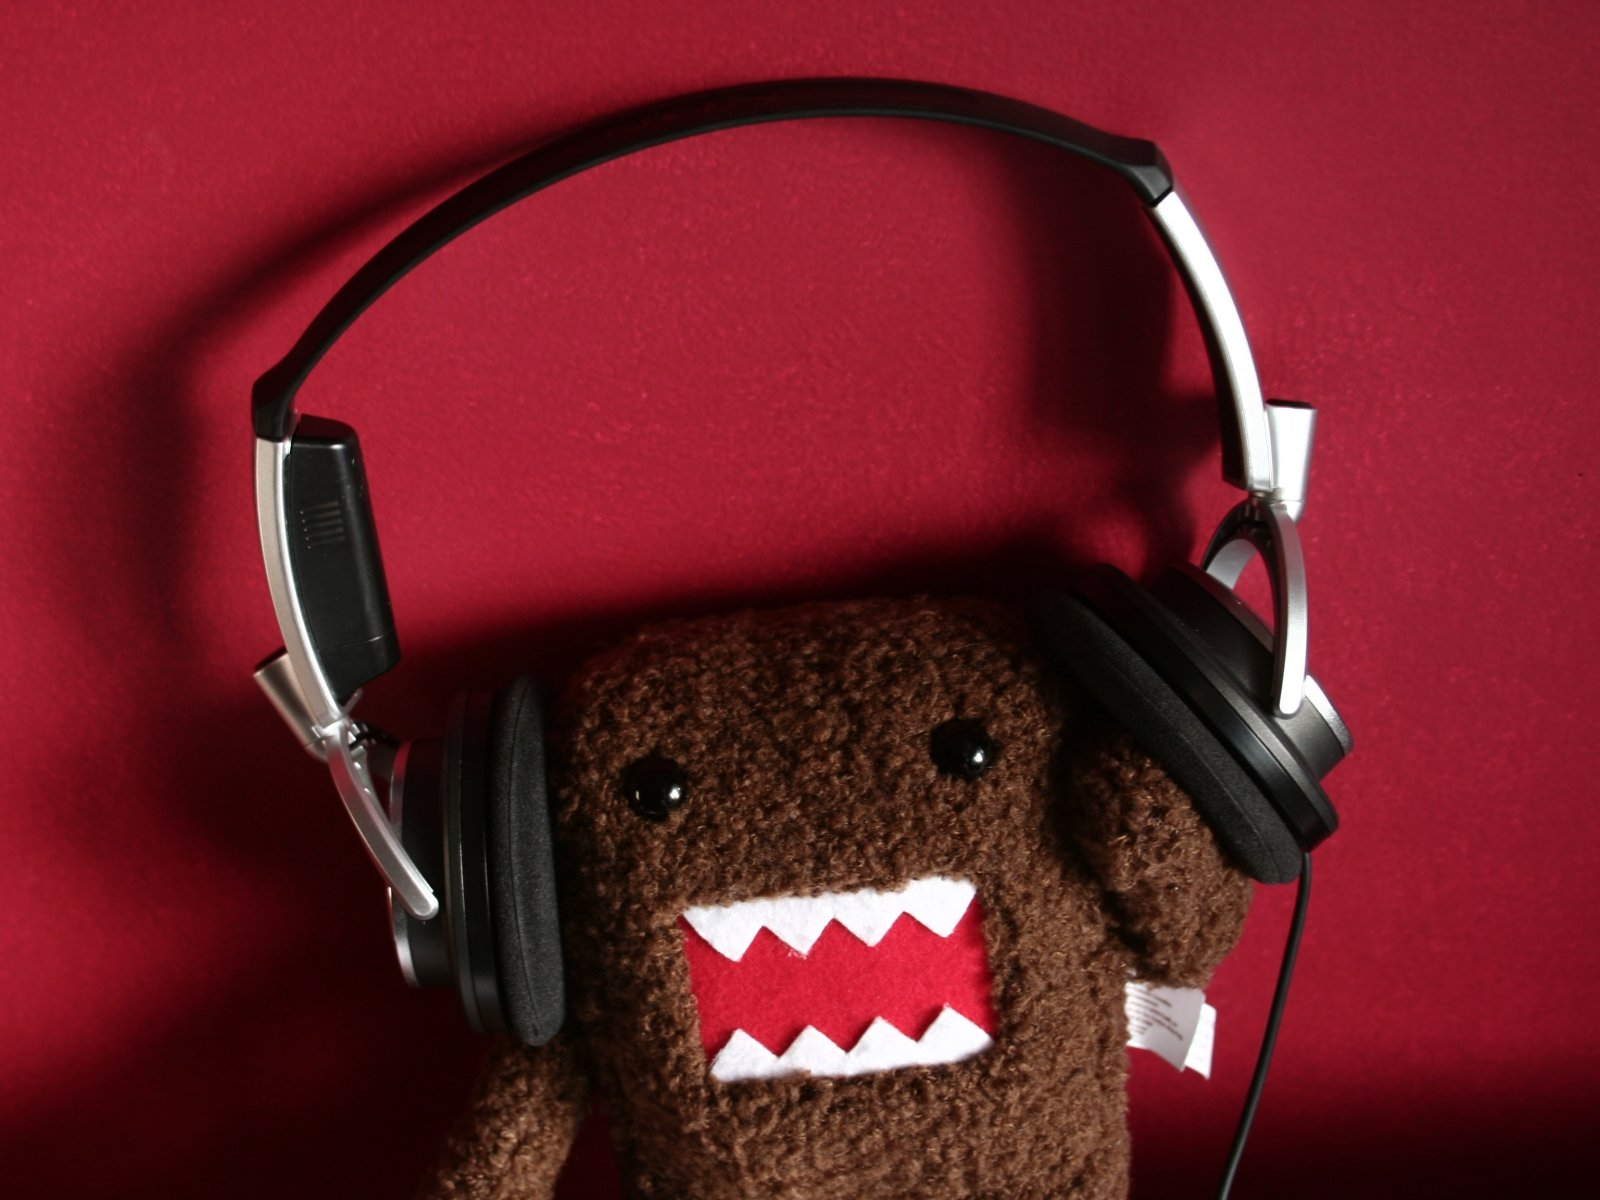 Domo Kun HD wallpaper background 1600x1200